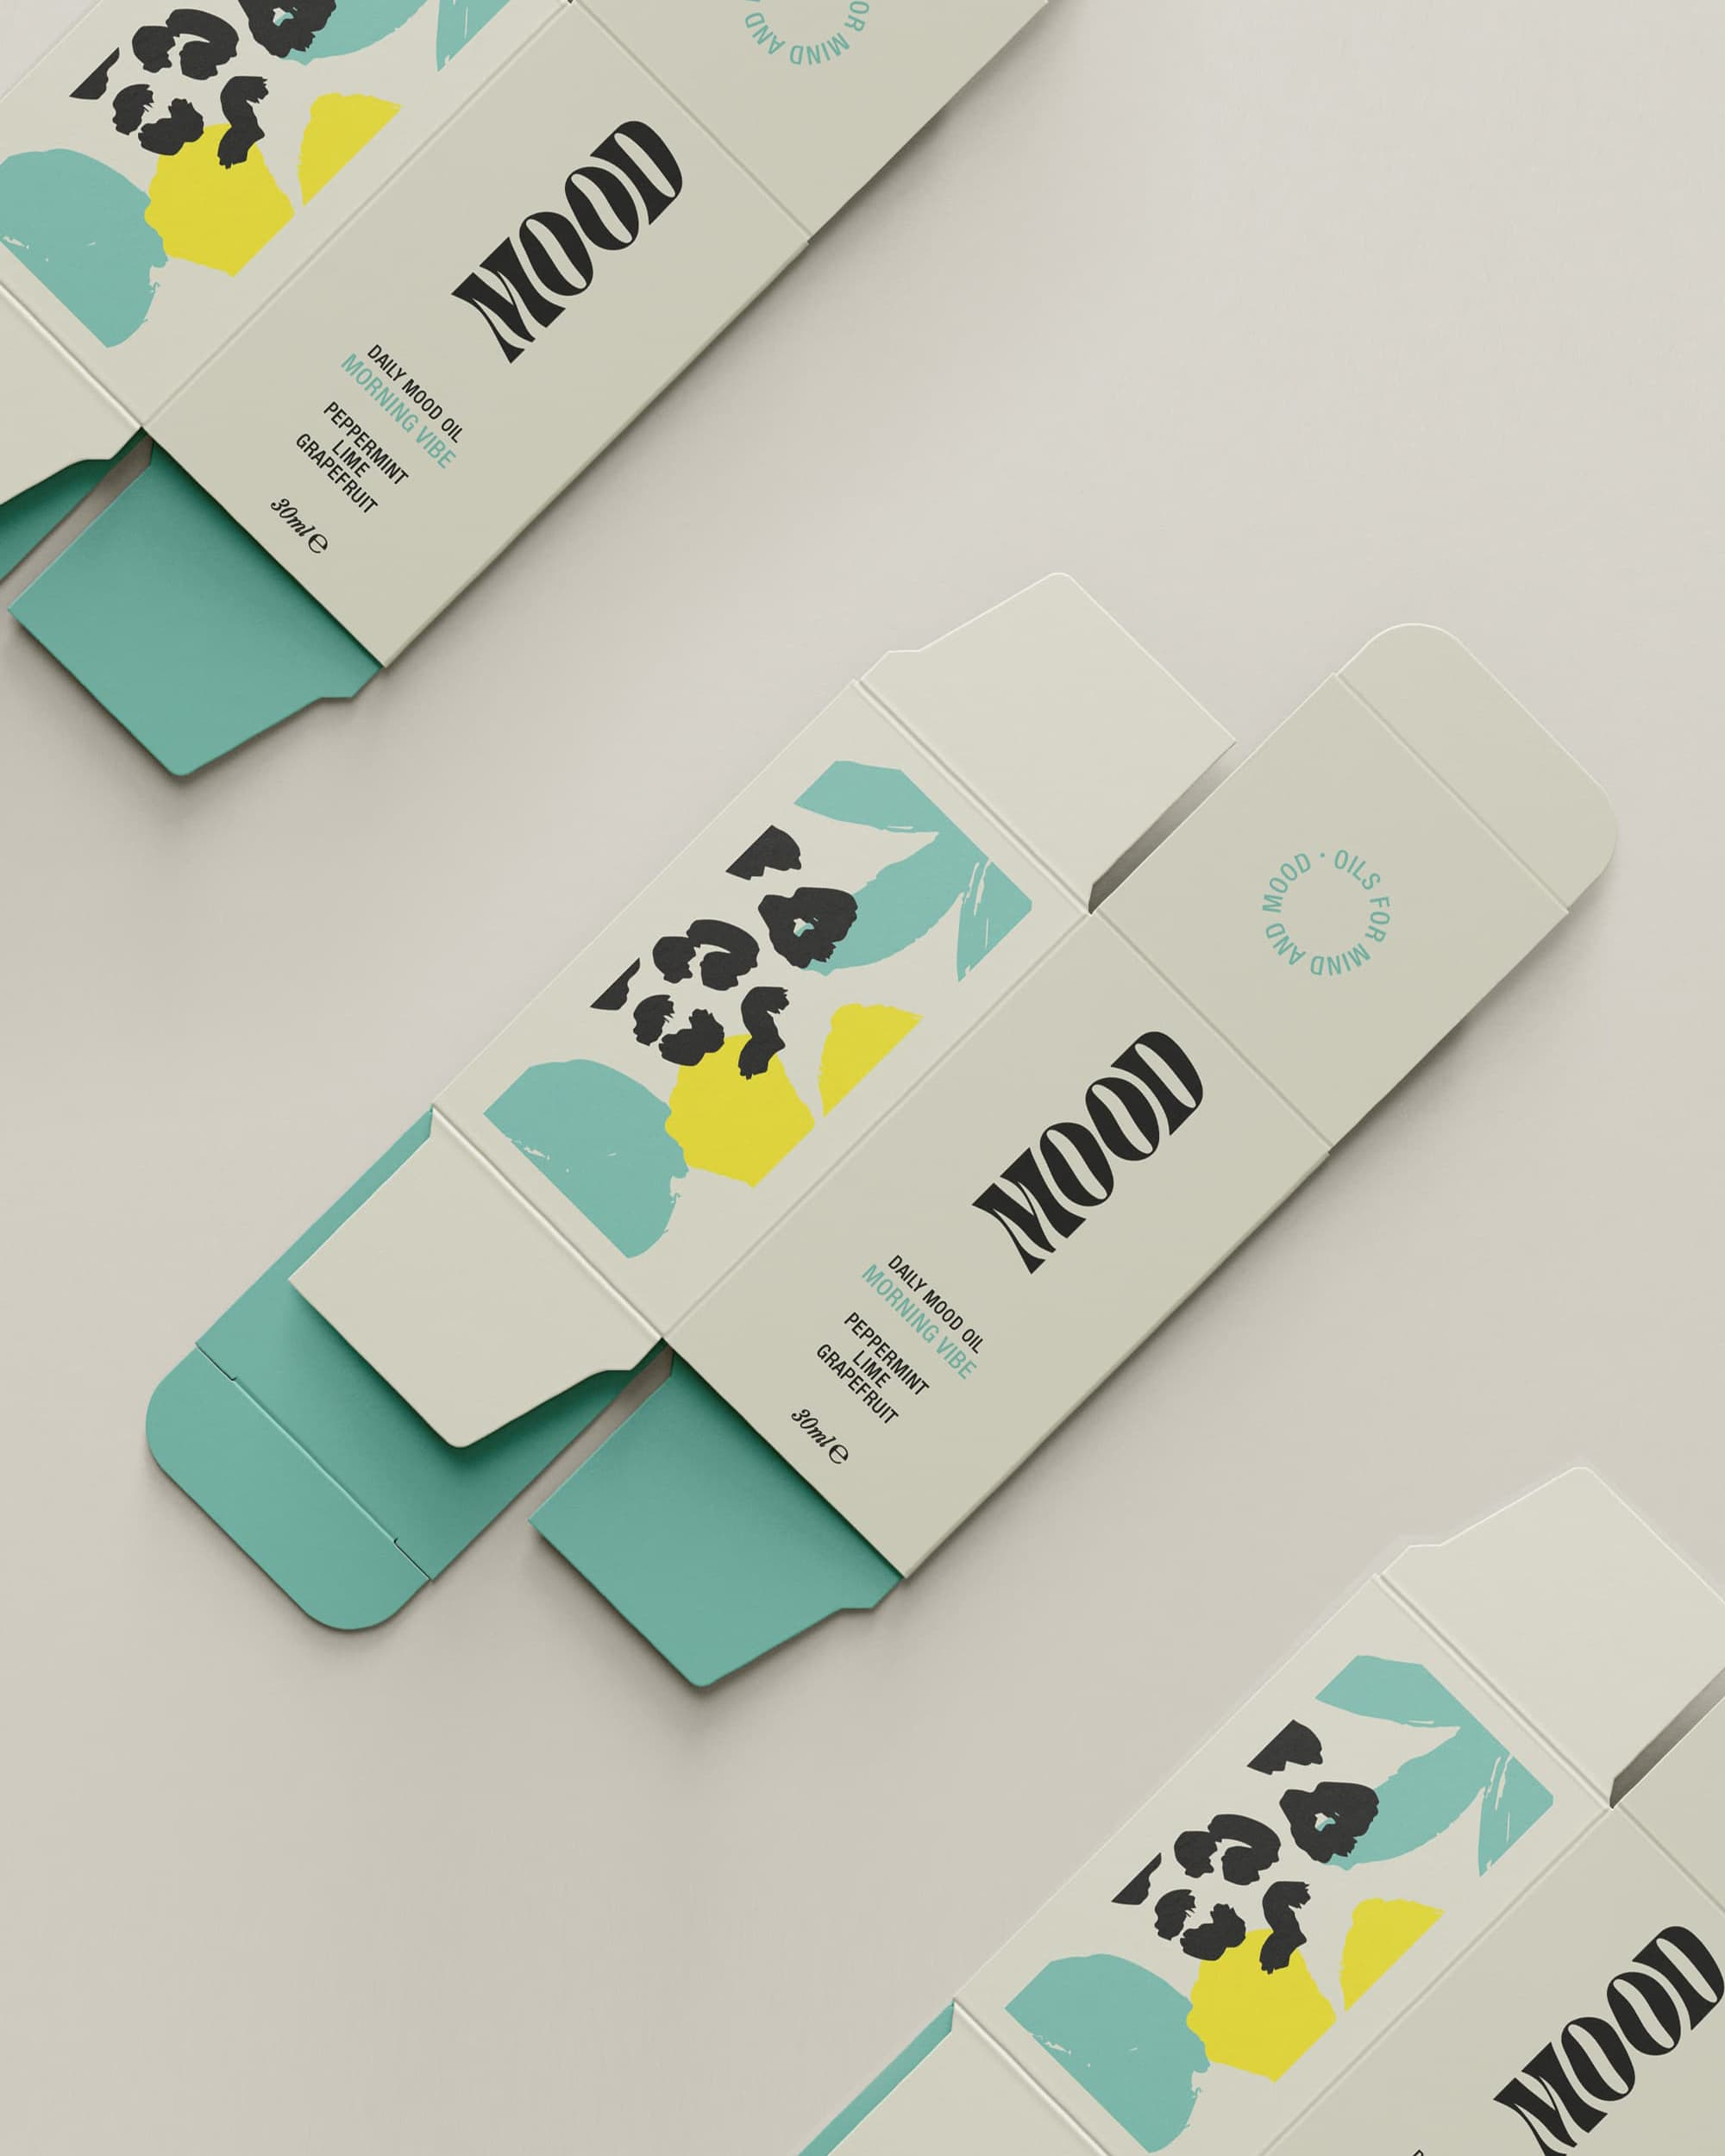 Mood oils packaging Design